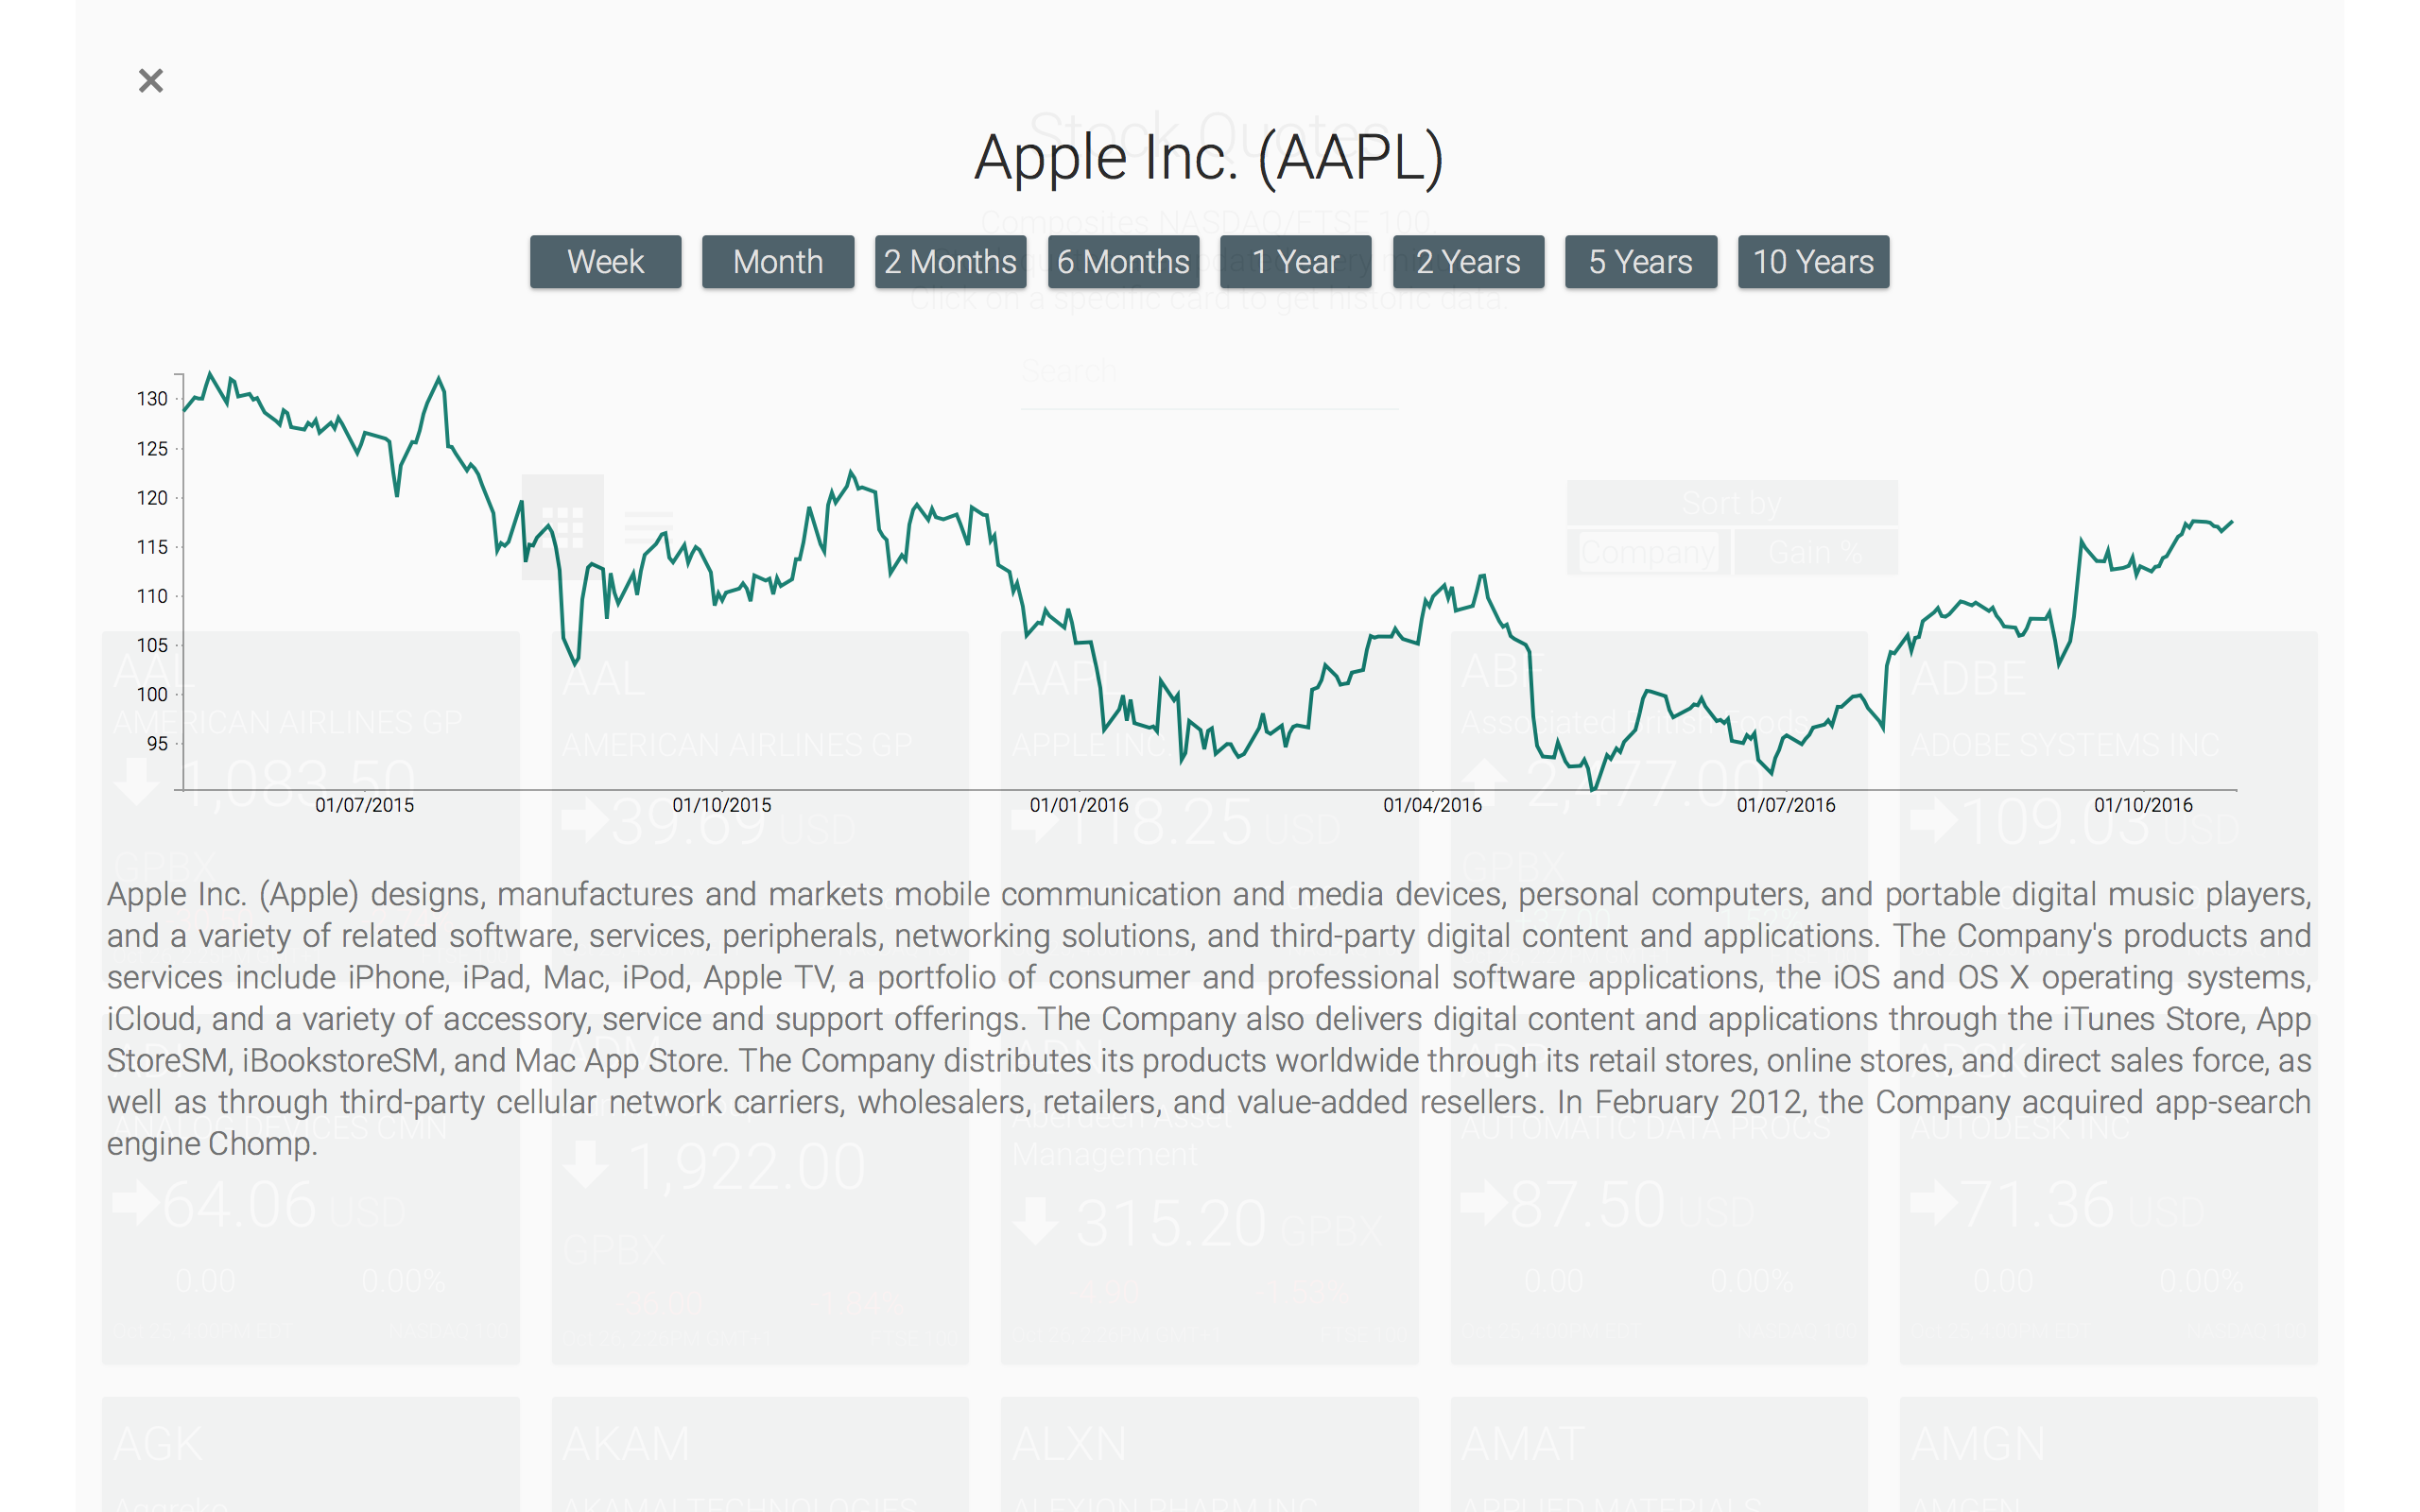 Stock quotes by maciej caputa on codepen example of apples historic quotes of a last year graph is collapsed daily biocorpaavc Image collections